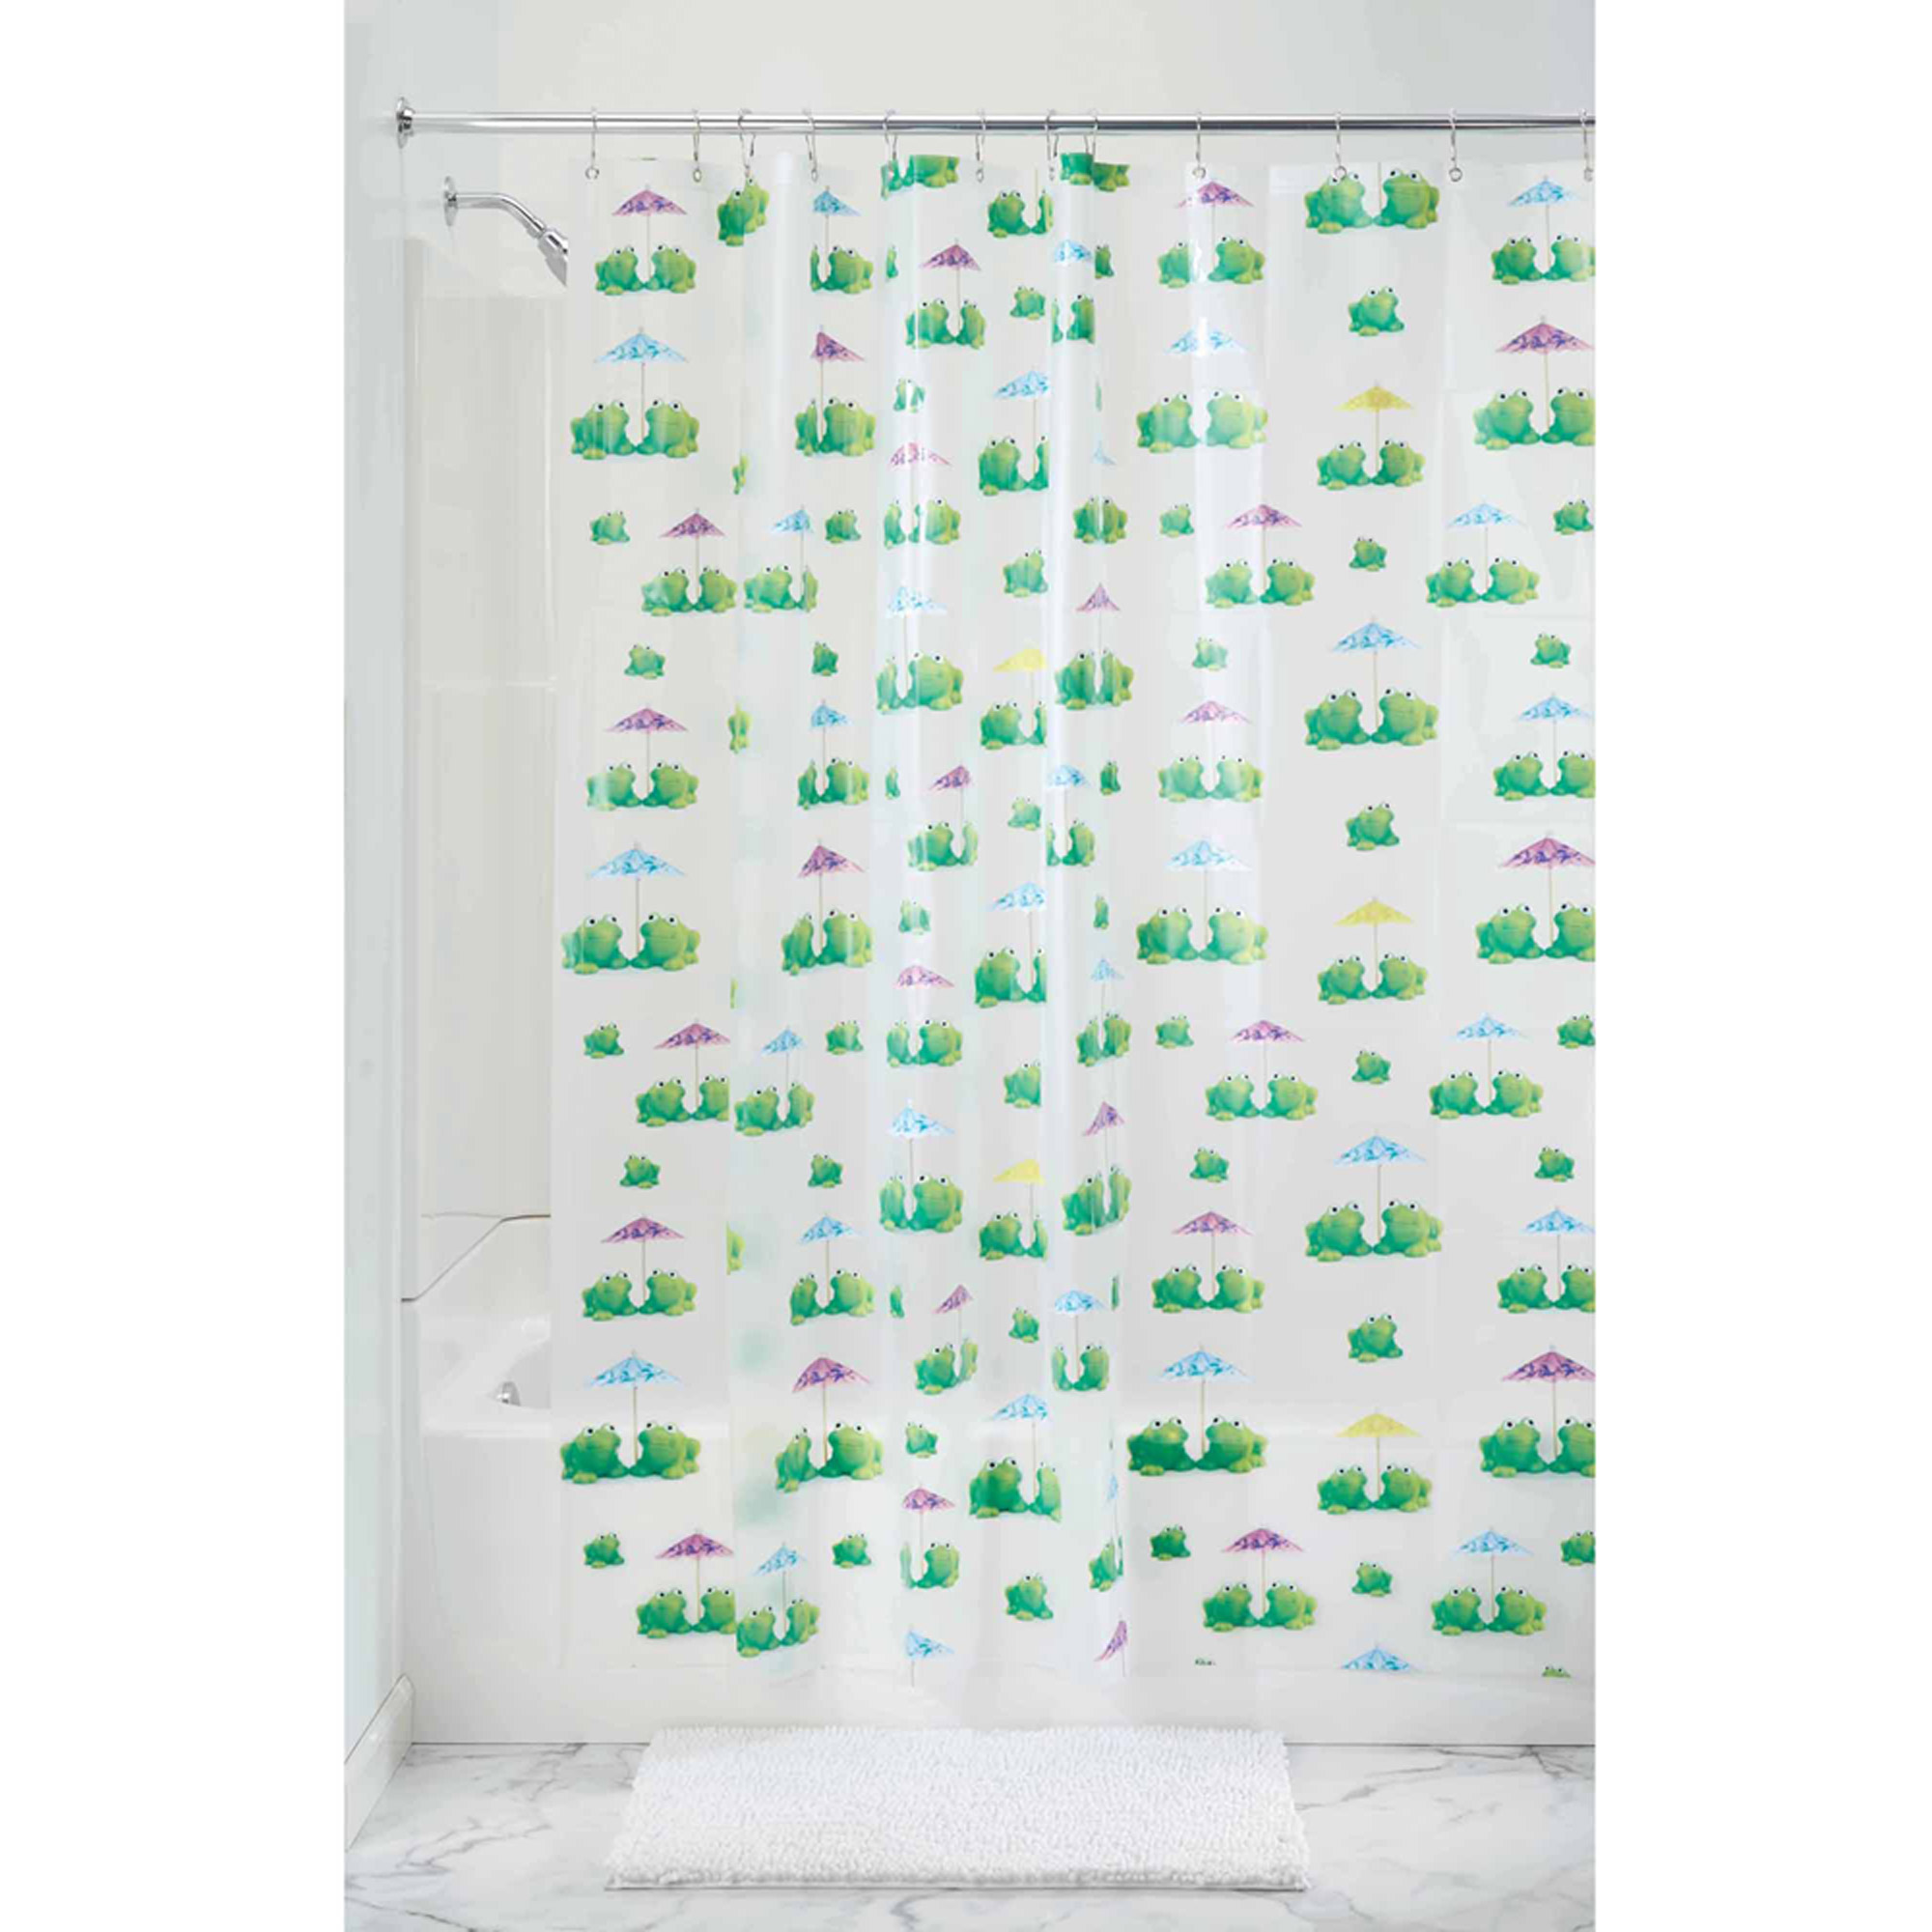 InterDesign Frogs PEVA Shower Curtain